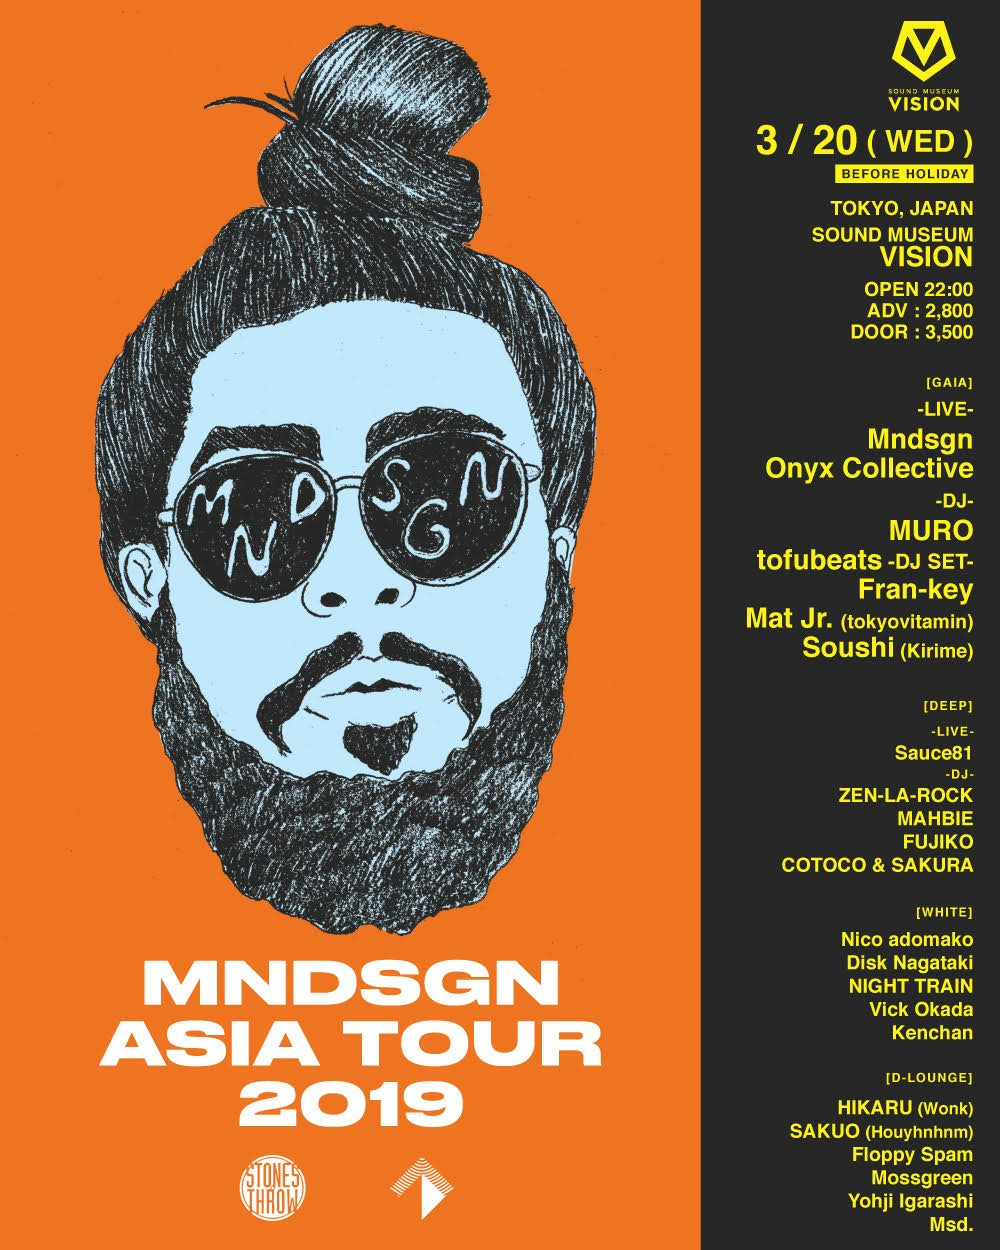 Mndsgn From LA (Stones Throw) Tokyo Show. Support Acts: Onyx Collective From NY. Muro, Sauce 81 - Flyer front